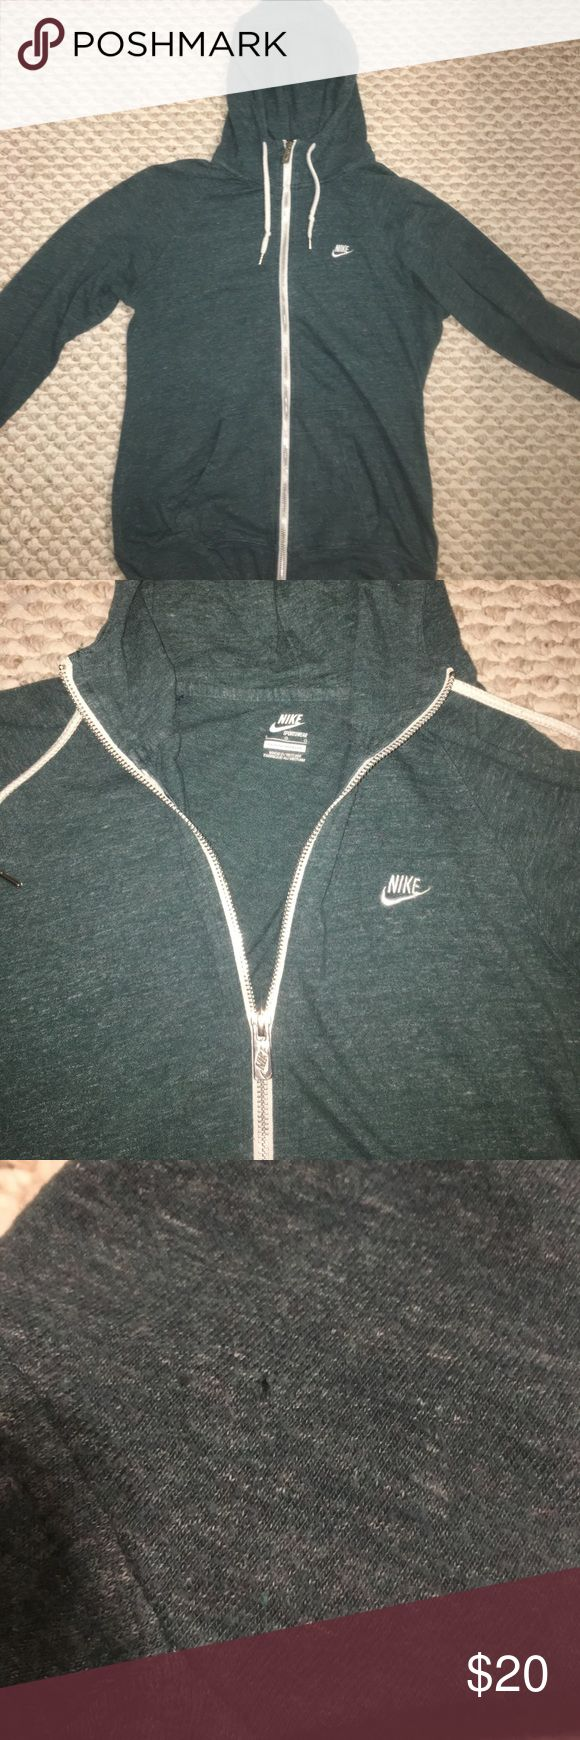 Nike Zip-up Women's green Nike zip-up hoodie. There is a teeny tiny hole in the hood, as shown in the last picture. Other than that, In great condition. Size large. Tops